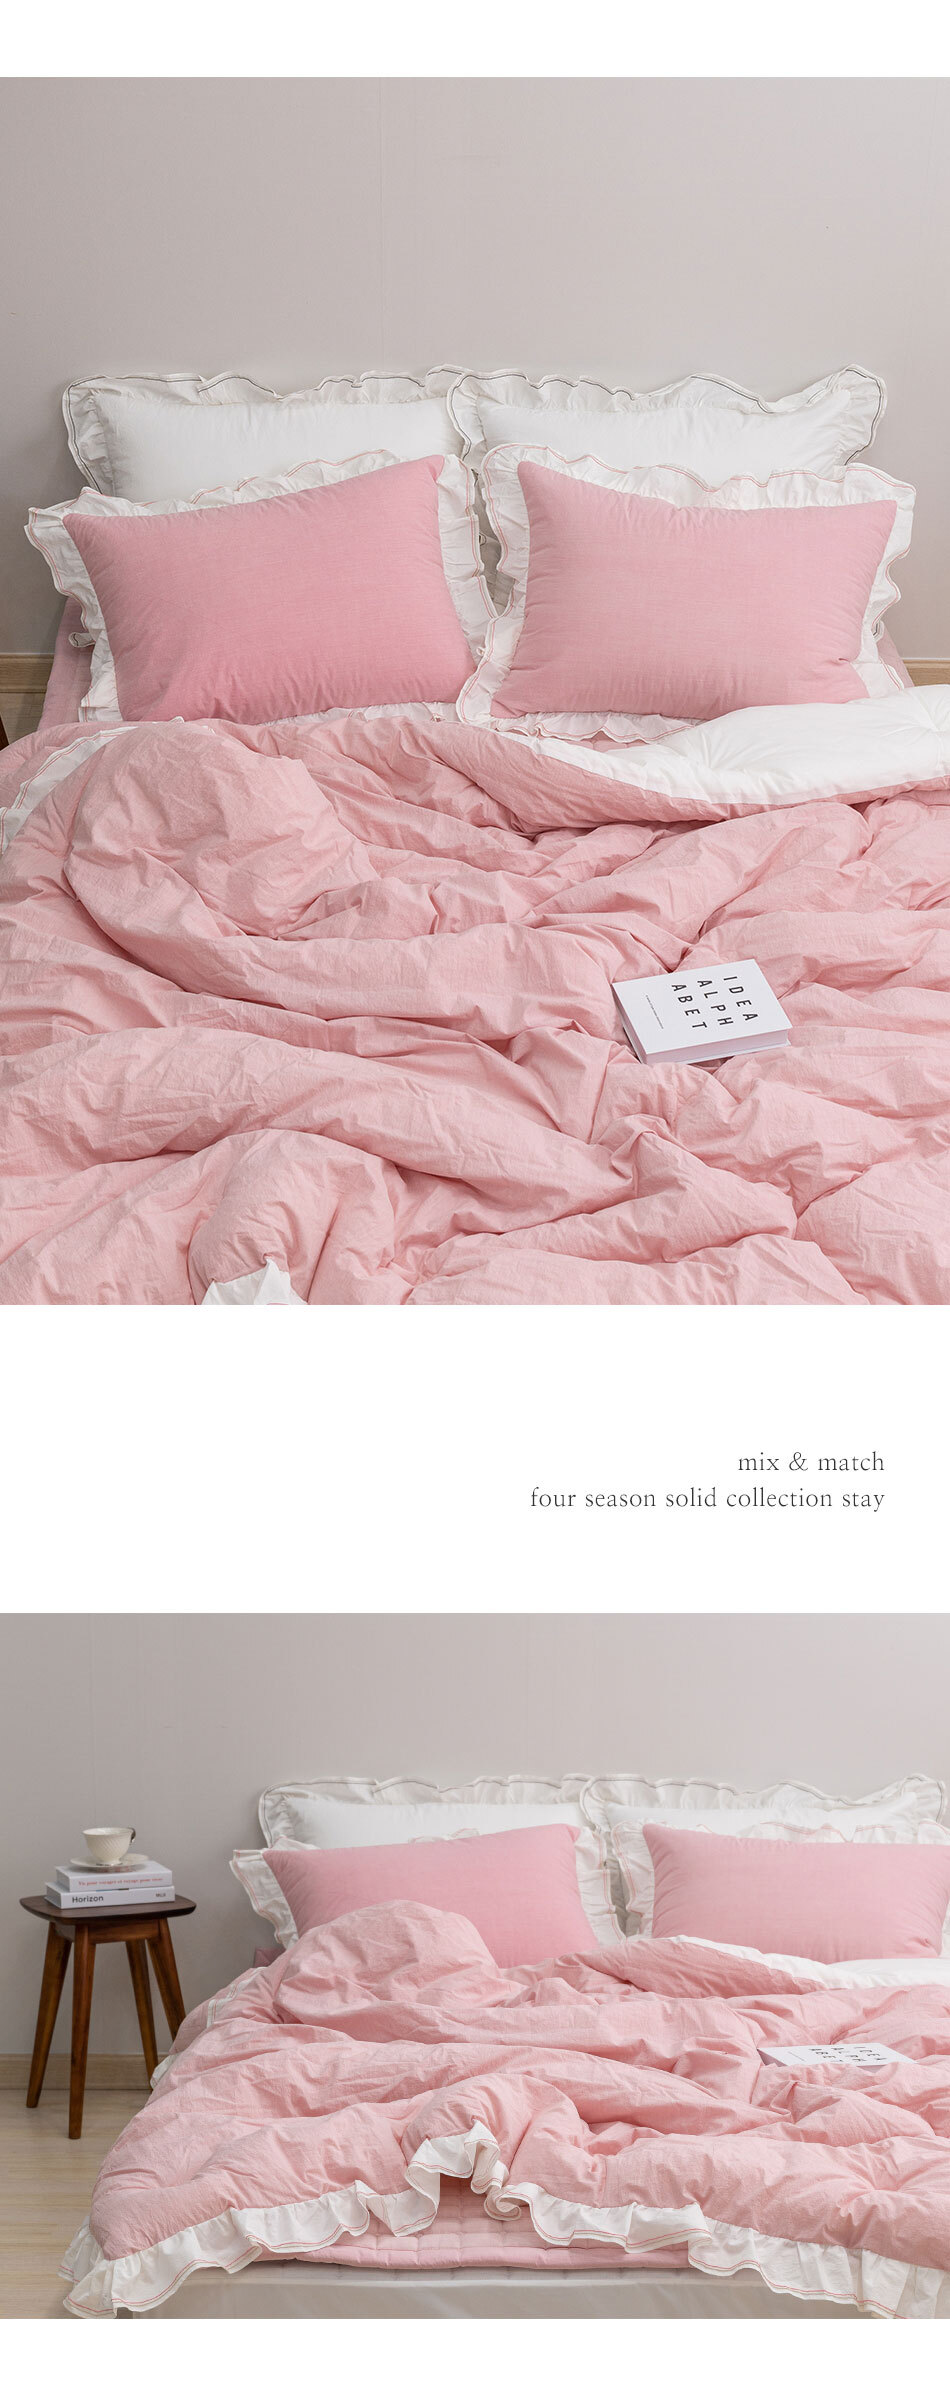 stay_bed_pink2.jpg